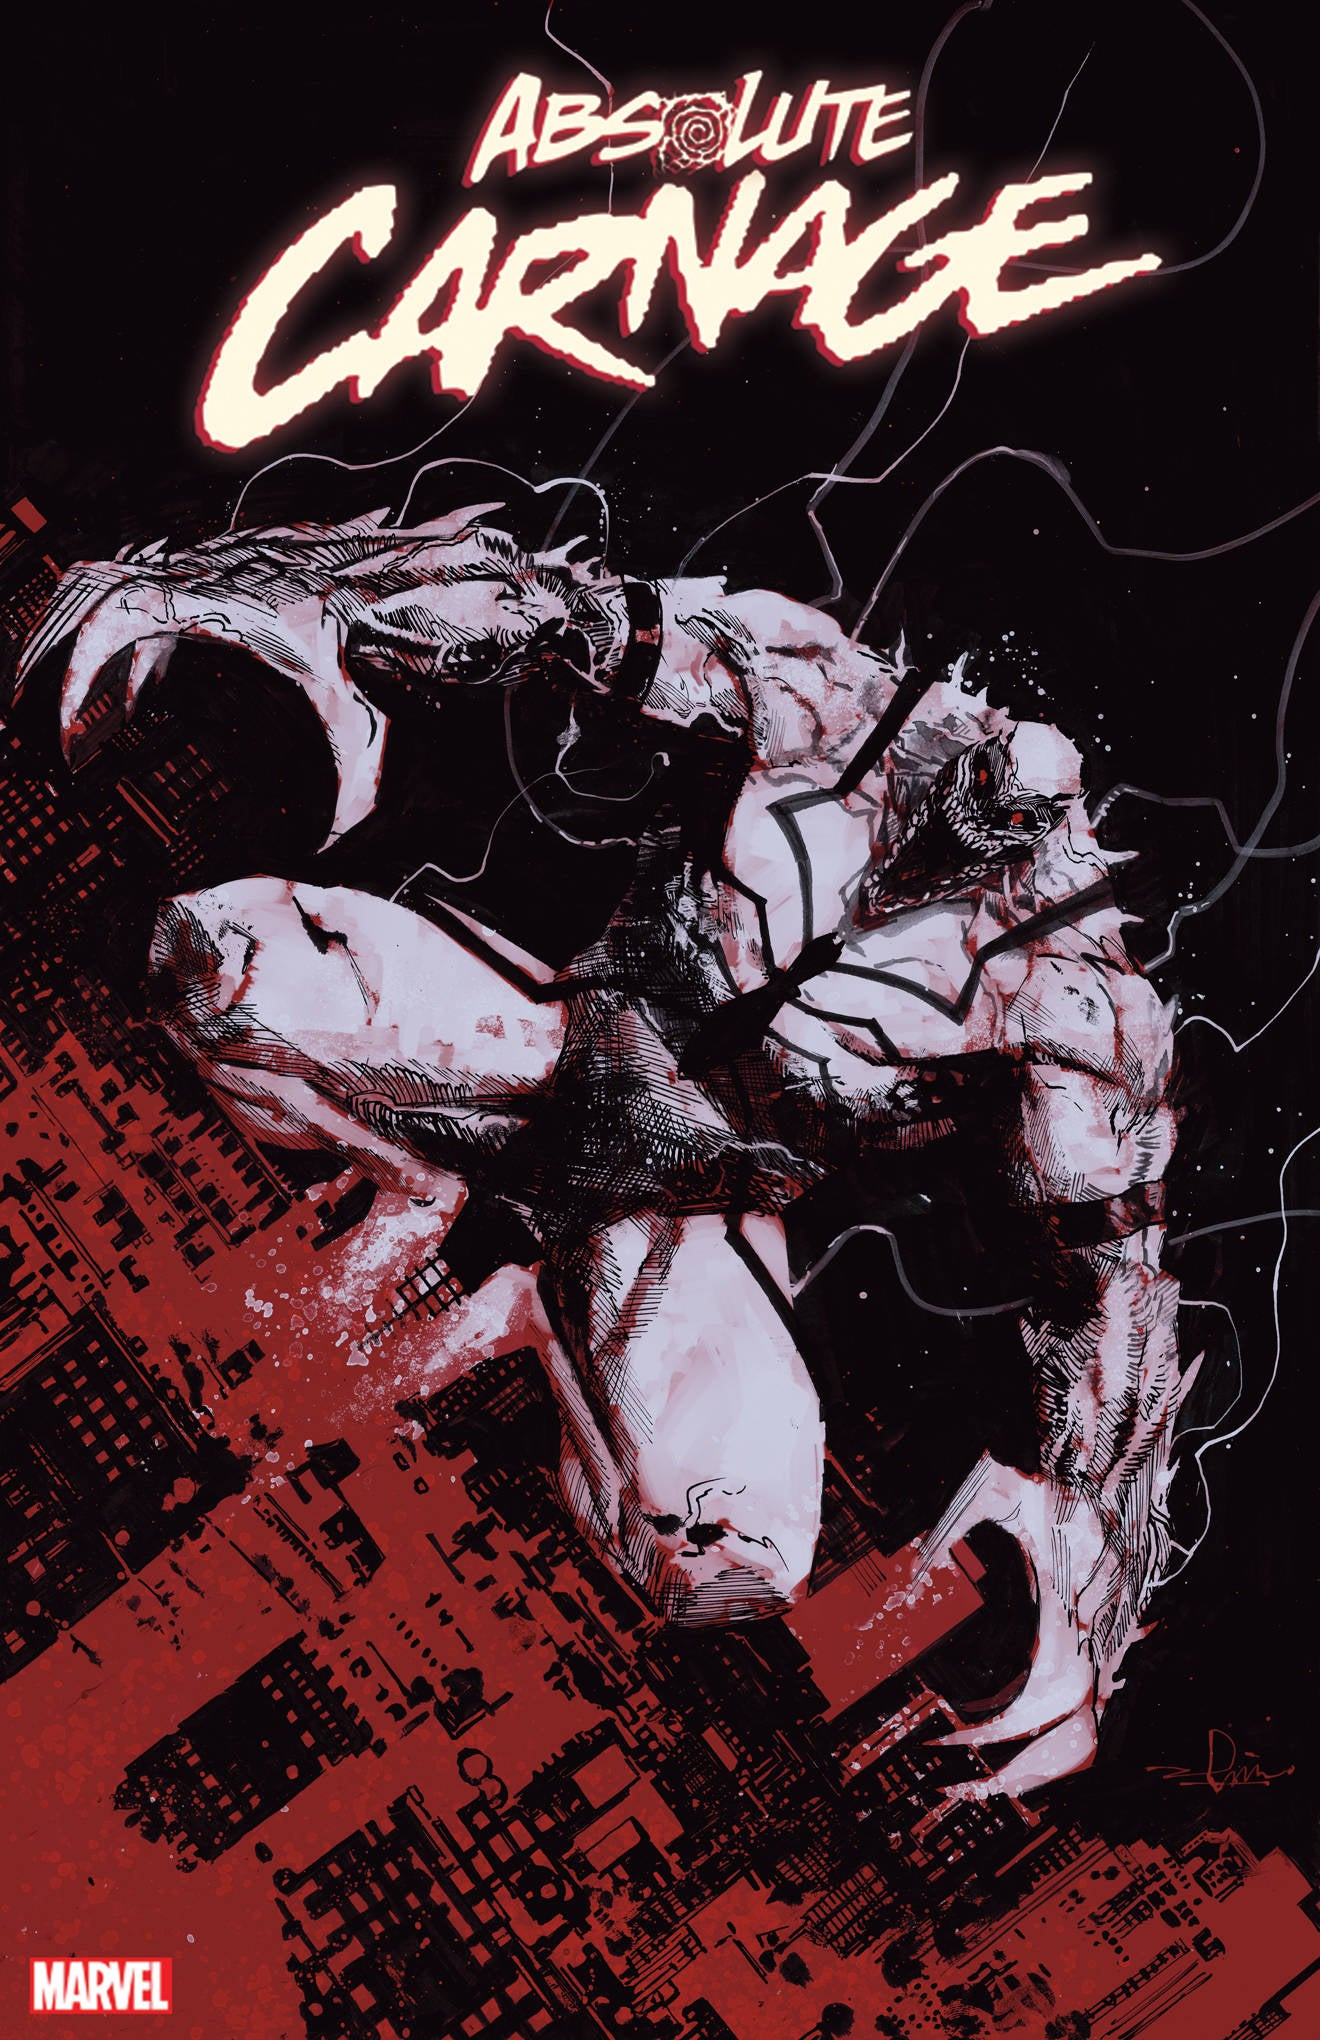 10/16/2019 ABSOLUTE CARNAGE #4 (OF 5) ZAFFINO CODEX 1:25 VARIANT